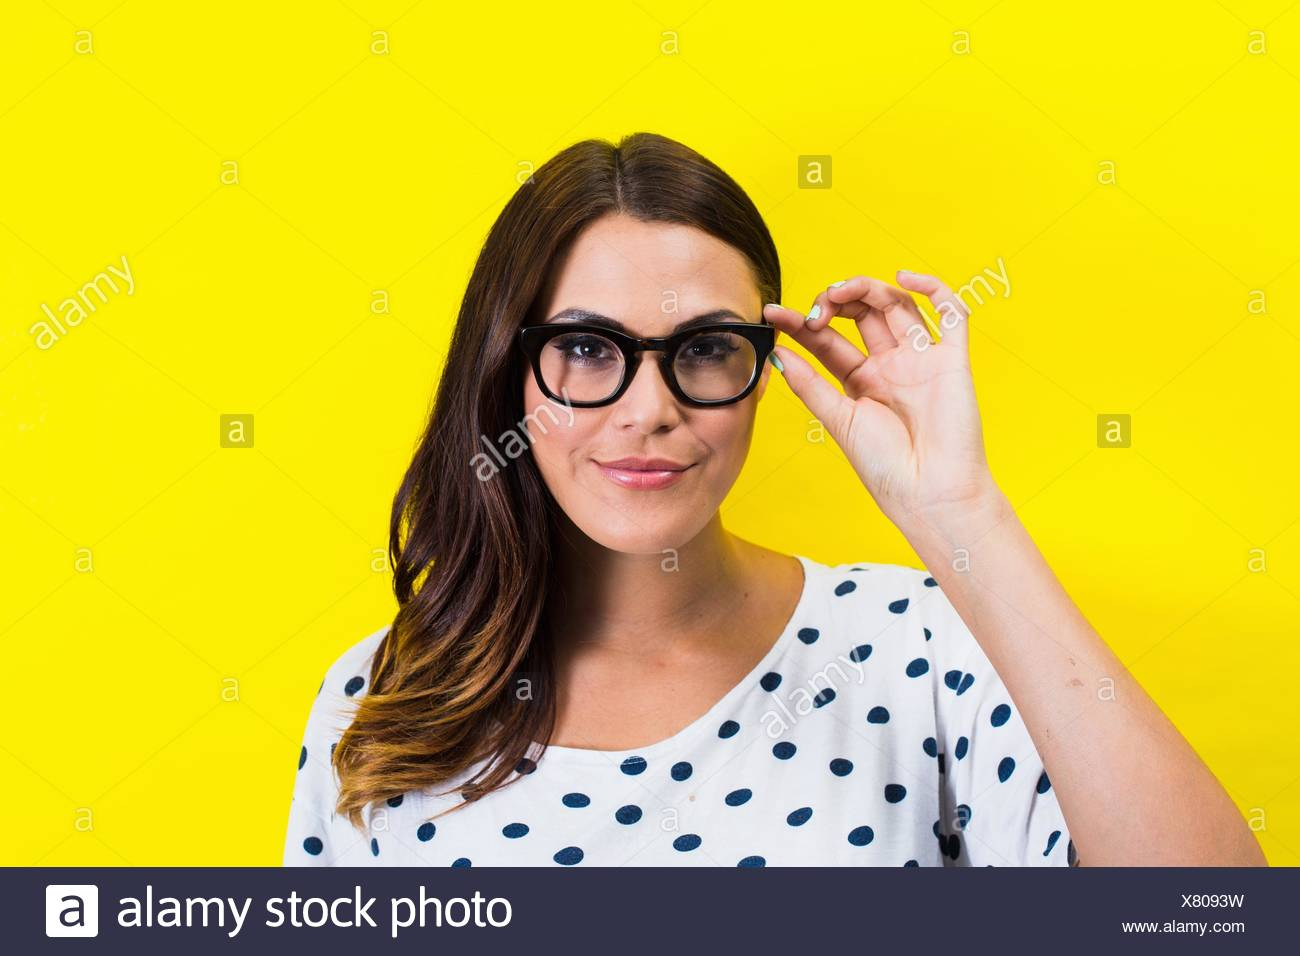 Portrait of young woman holding eyeglasses - Stock Image